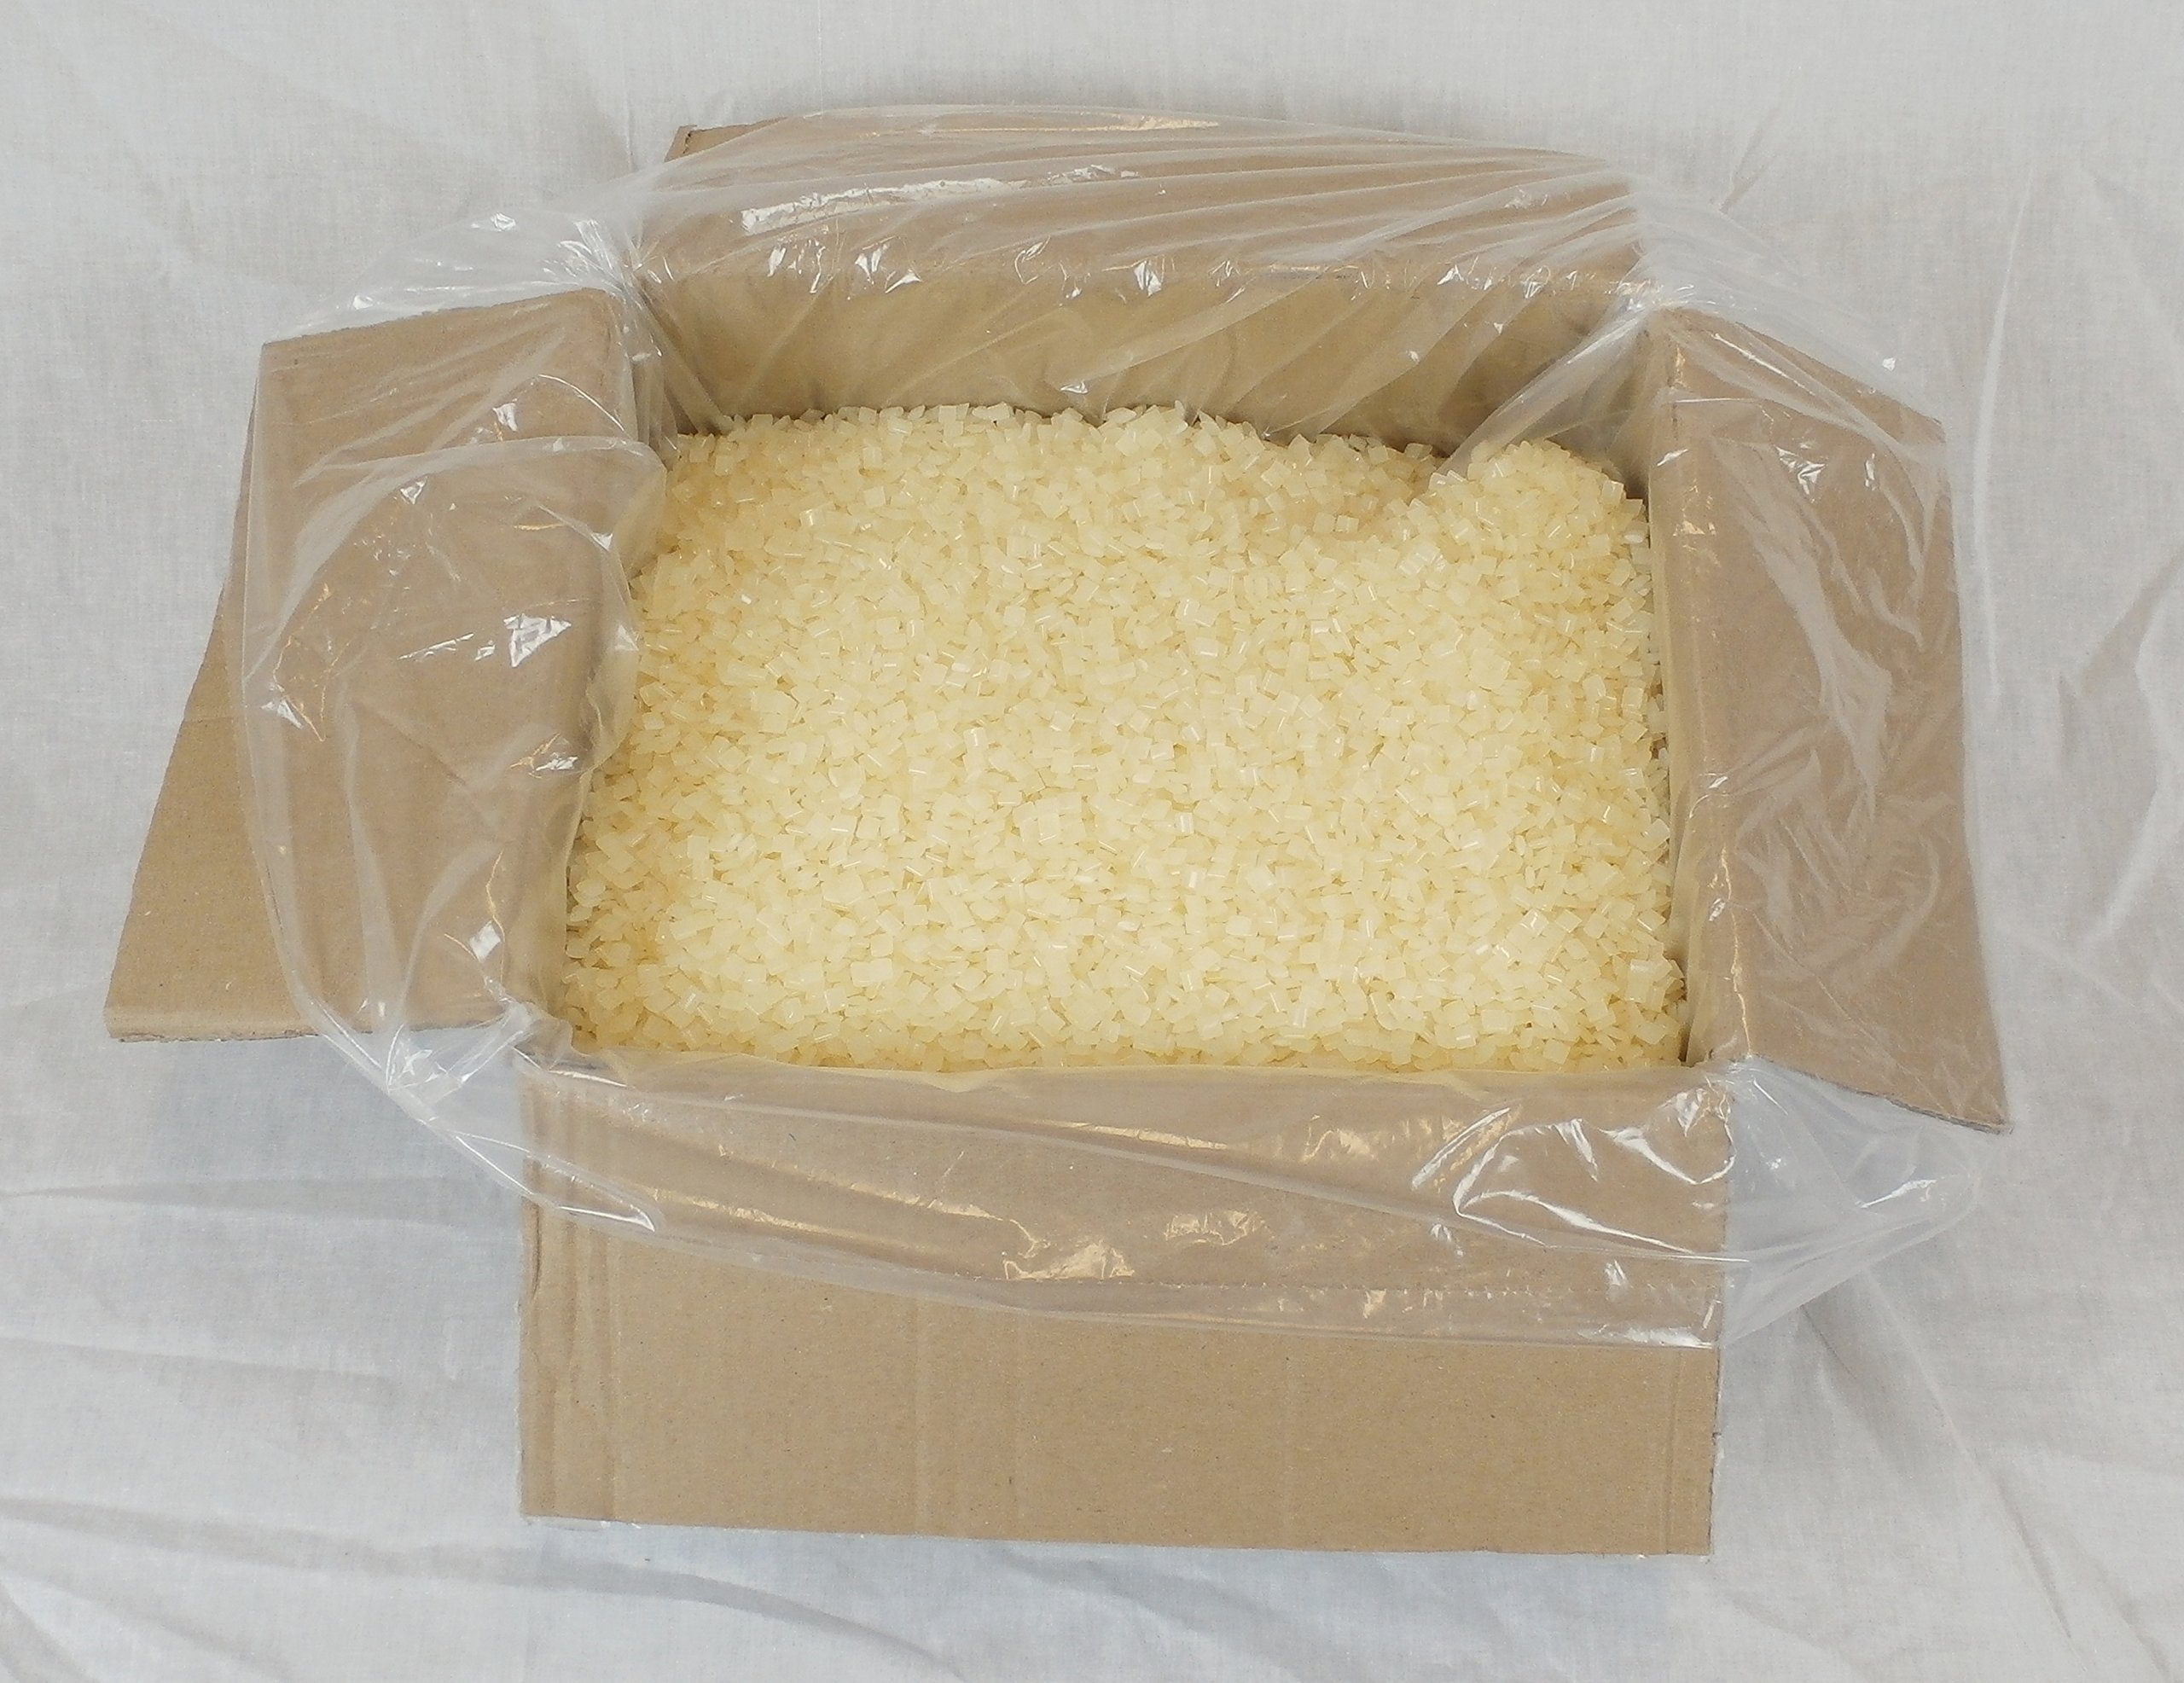 GlueSticksDirect Hot Melt Glue HM 056 25 lbs bulk by GlueSticksDirect.com